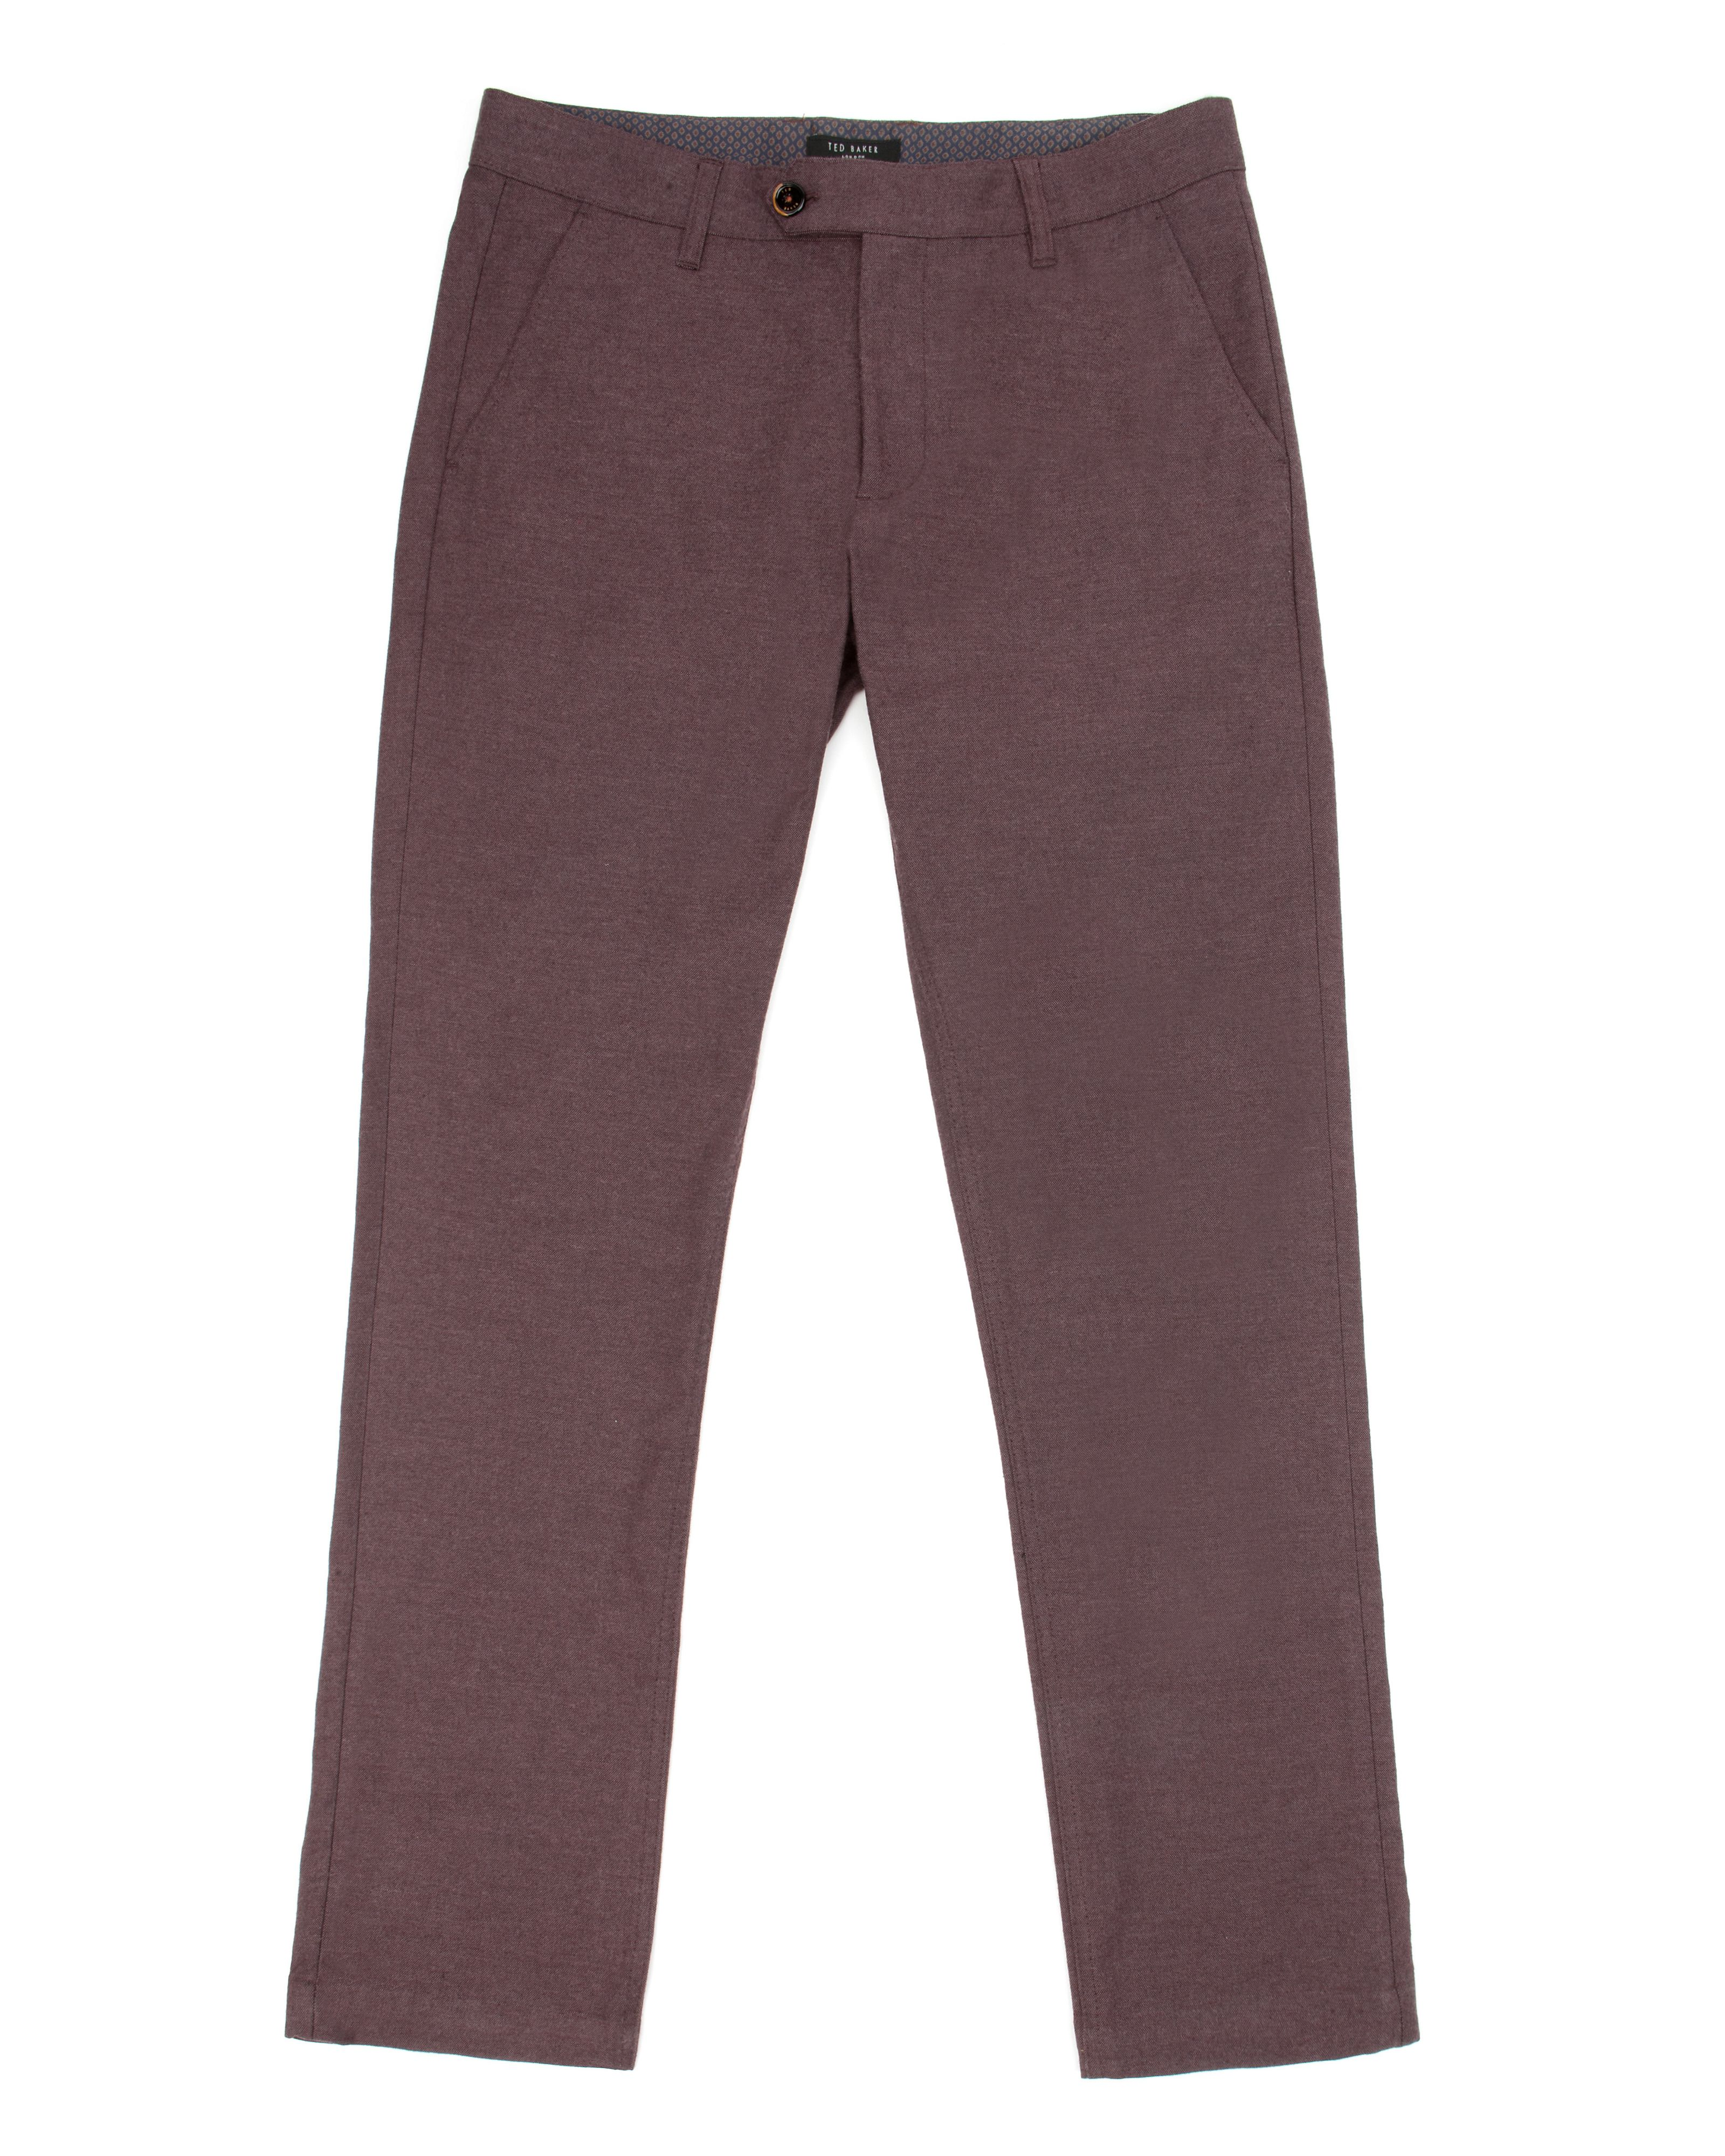 Lommy classic fit brushed cotton trousers